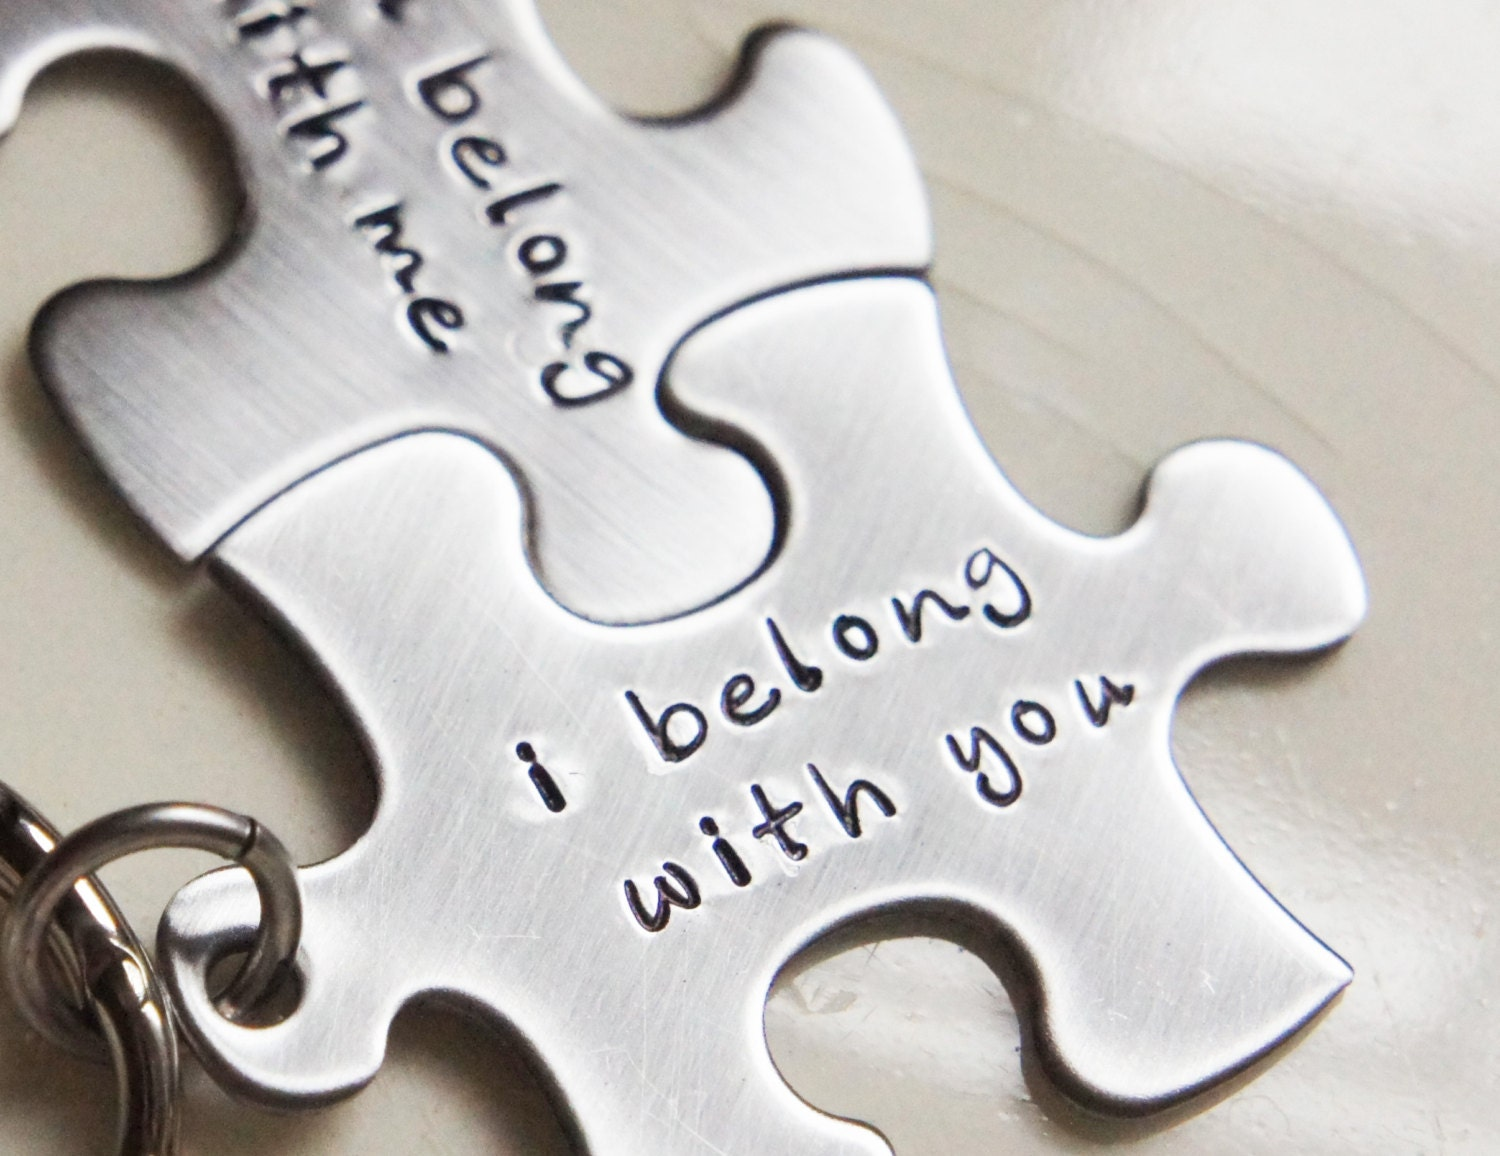 Best Friend Quotes For Couples : Couples best friends keychain set i belong with you puzzle